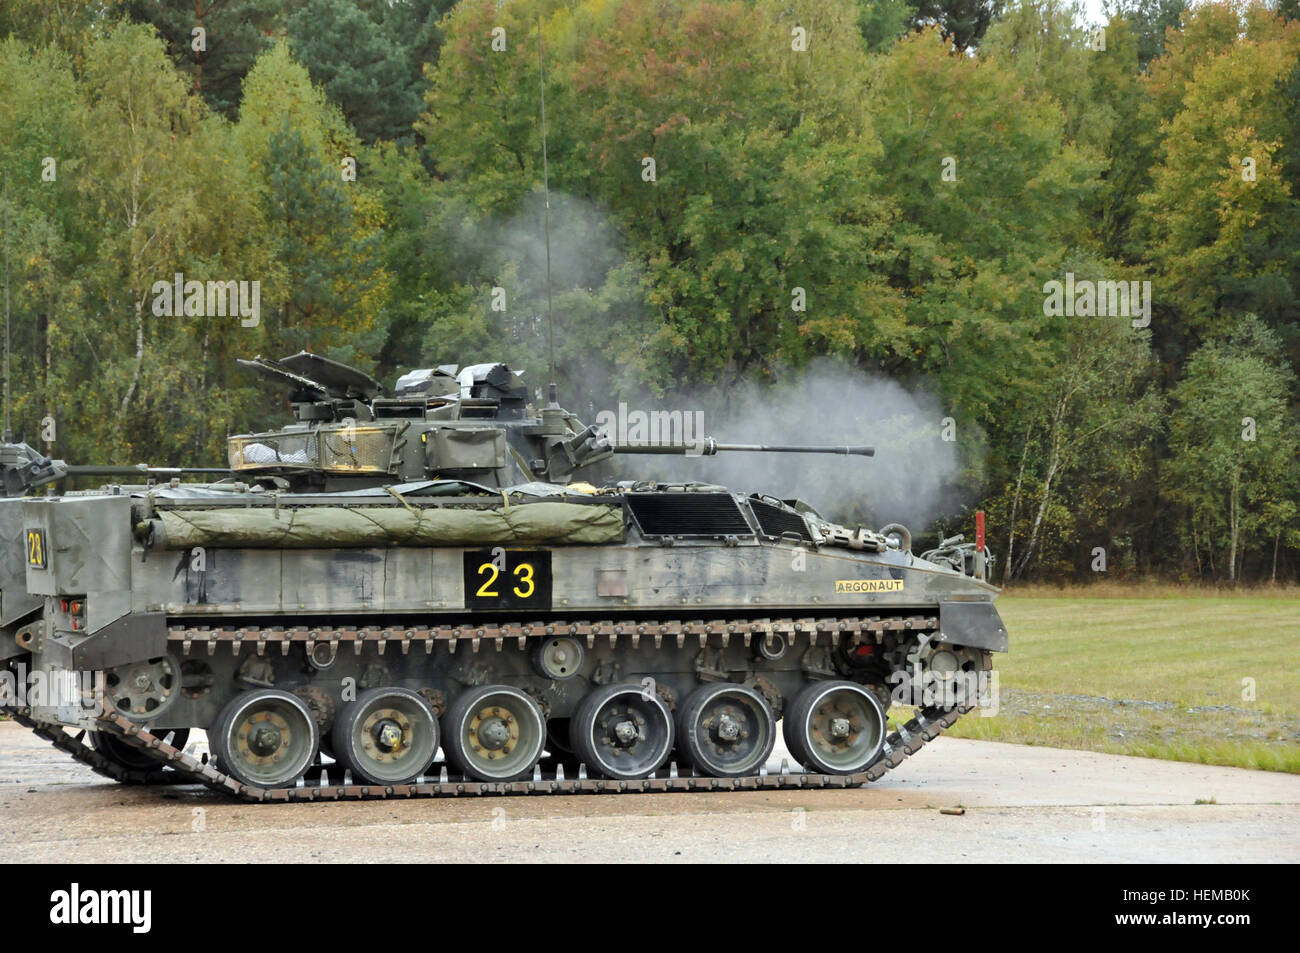 The United Kingdom's Bravo Company of the 3rd Mercian fires a 5-11 Warrior Infantry Fighting Vehicle round at Grafenwoehr - Stock Image